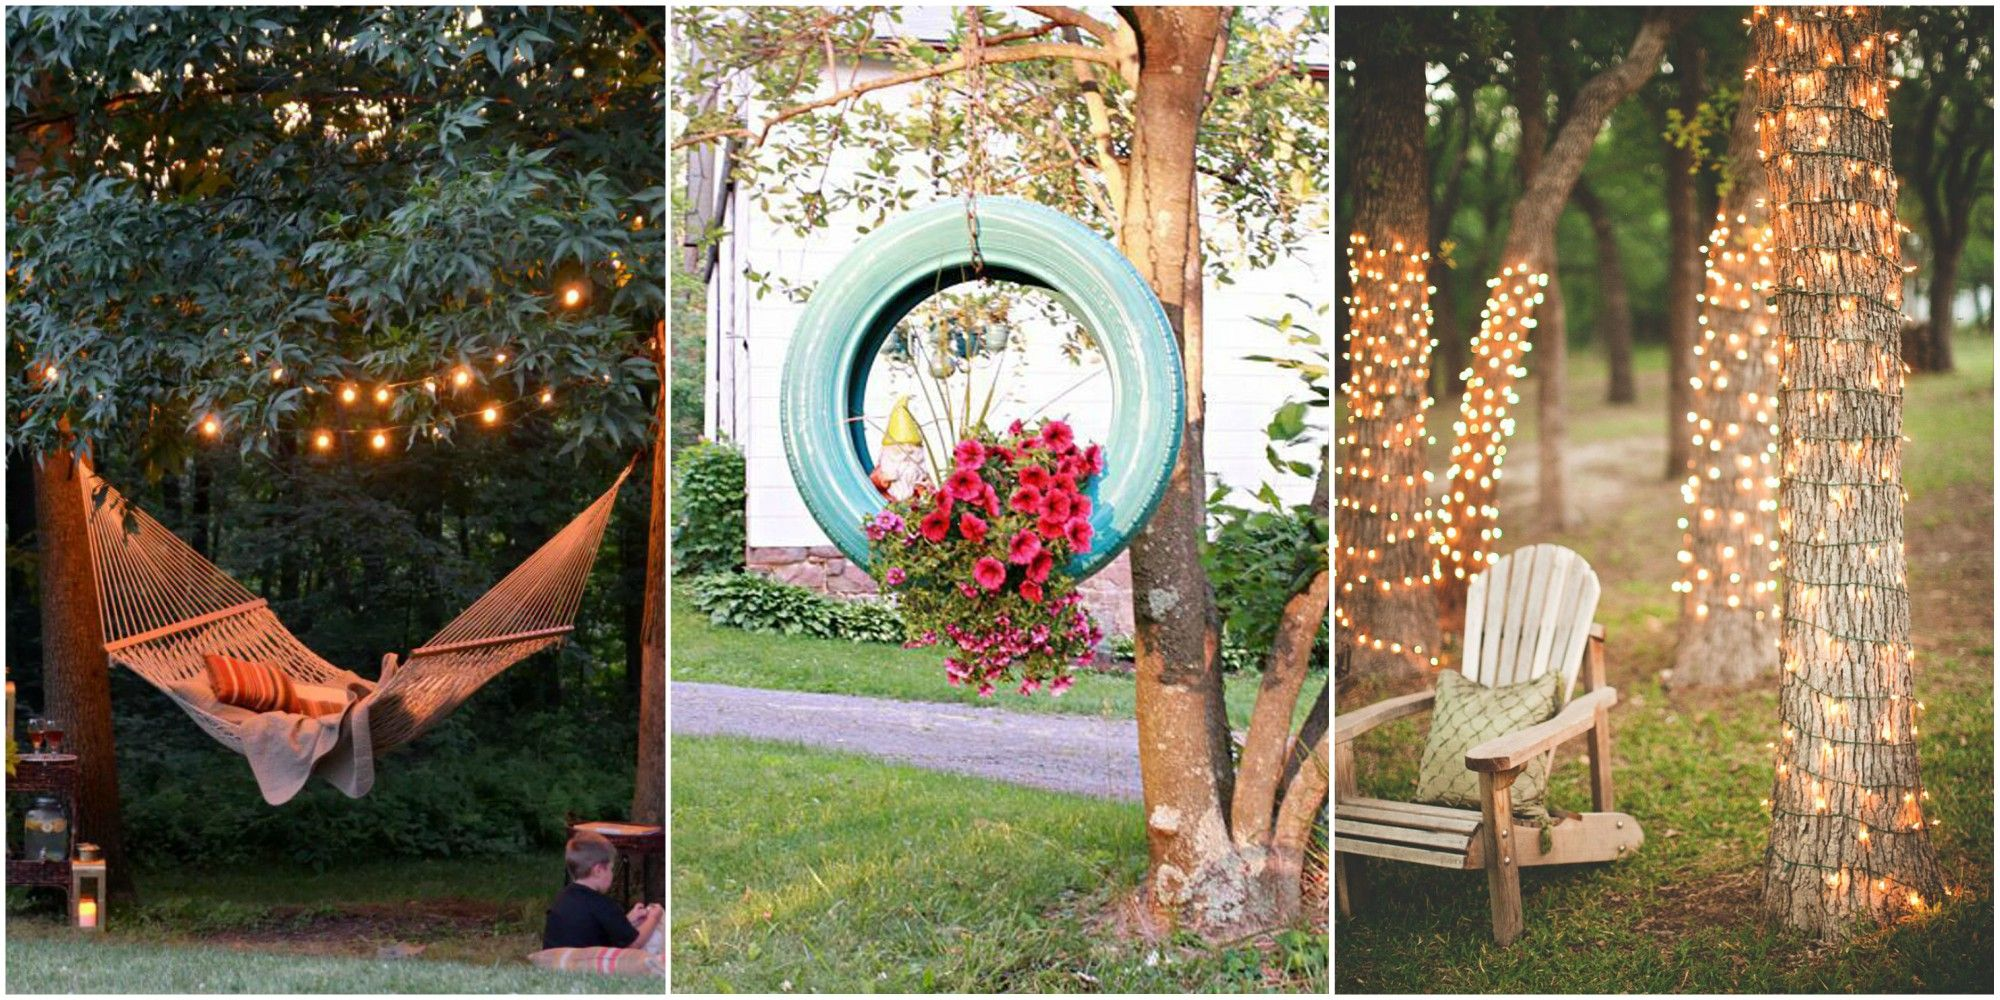 Amazing Backyard Decorating Ideas